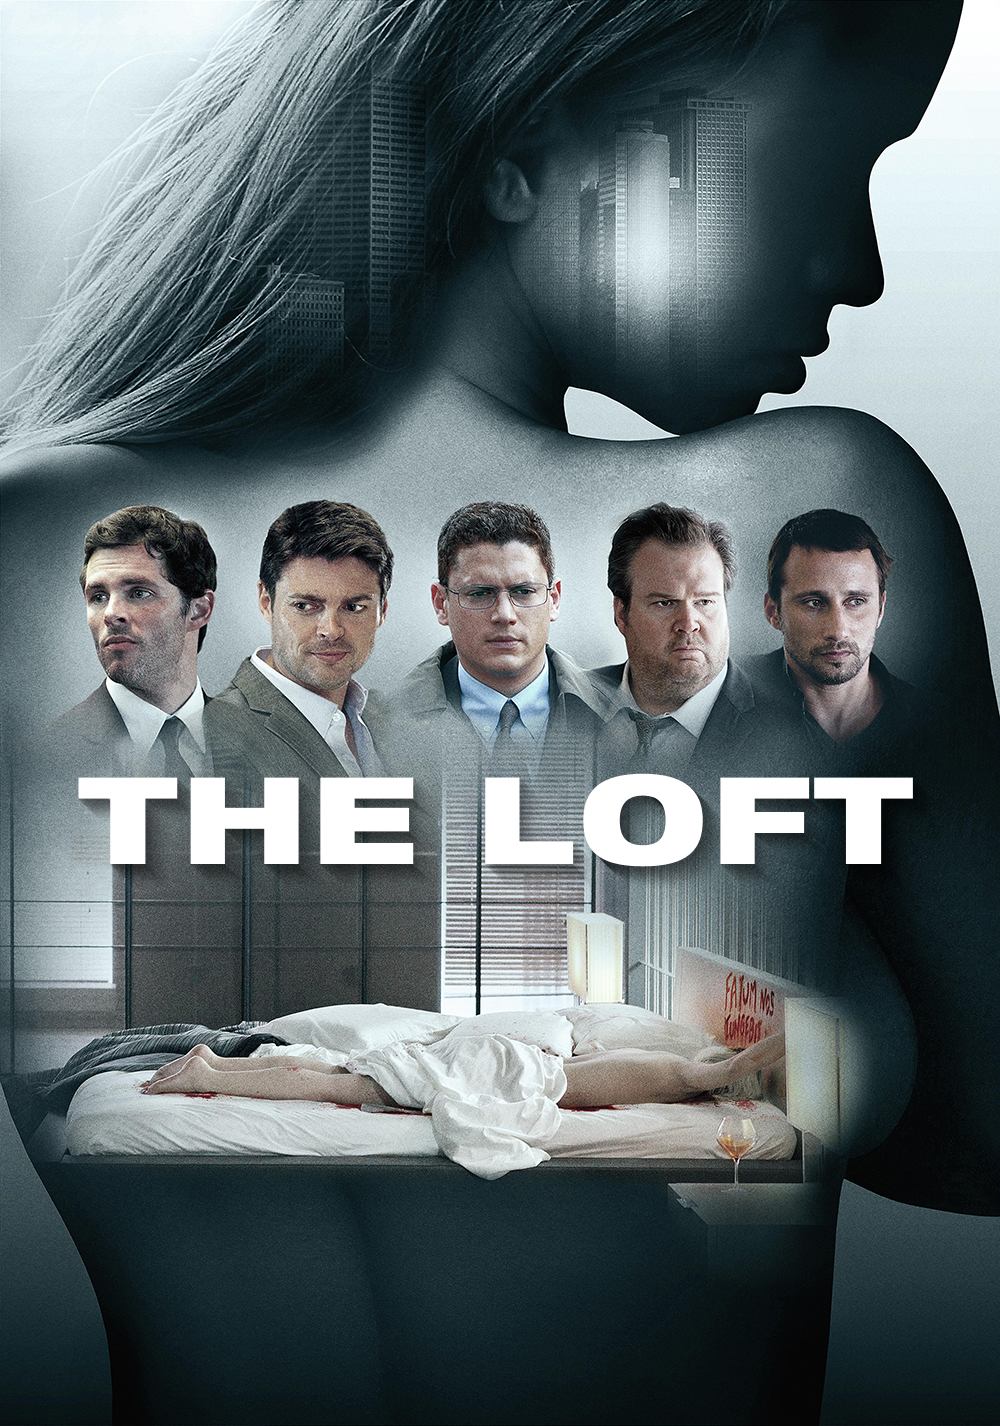 The Loft Wallpapers Movie Hq The Loft Pictures 4k Wallpapers 2019 Images, Photos, Reviews